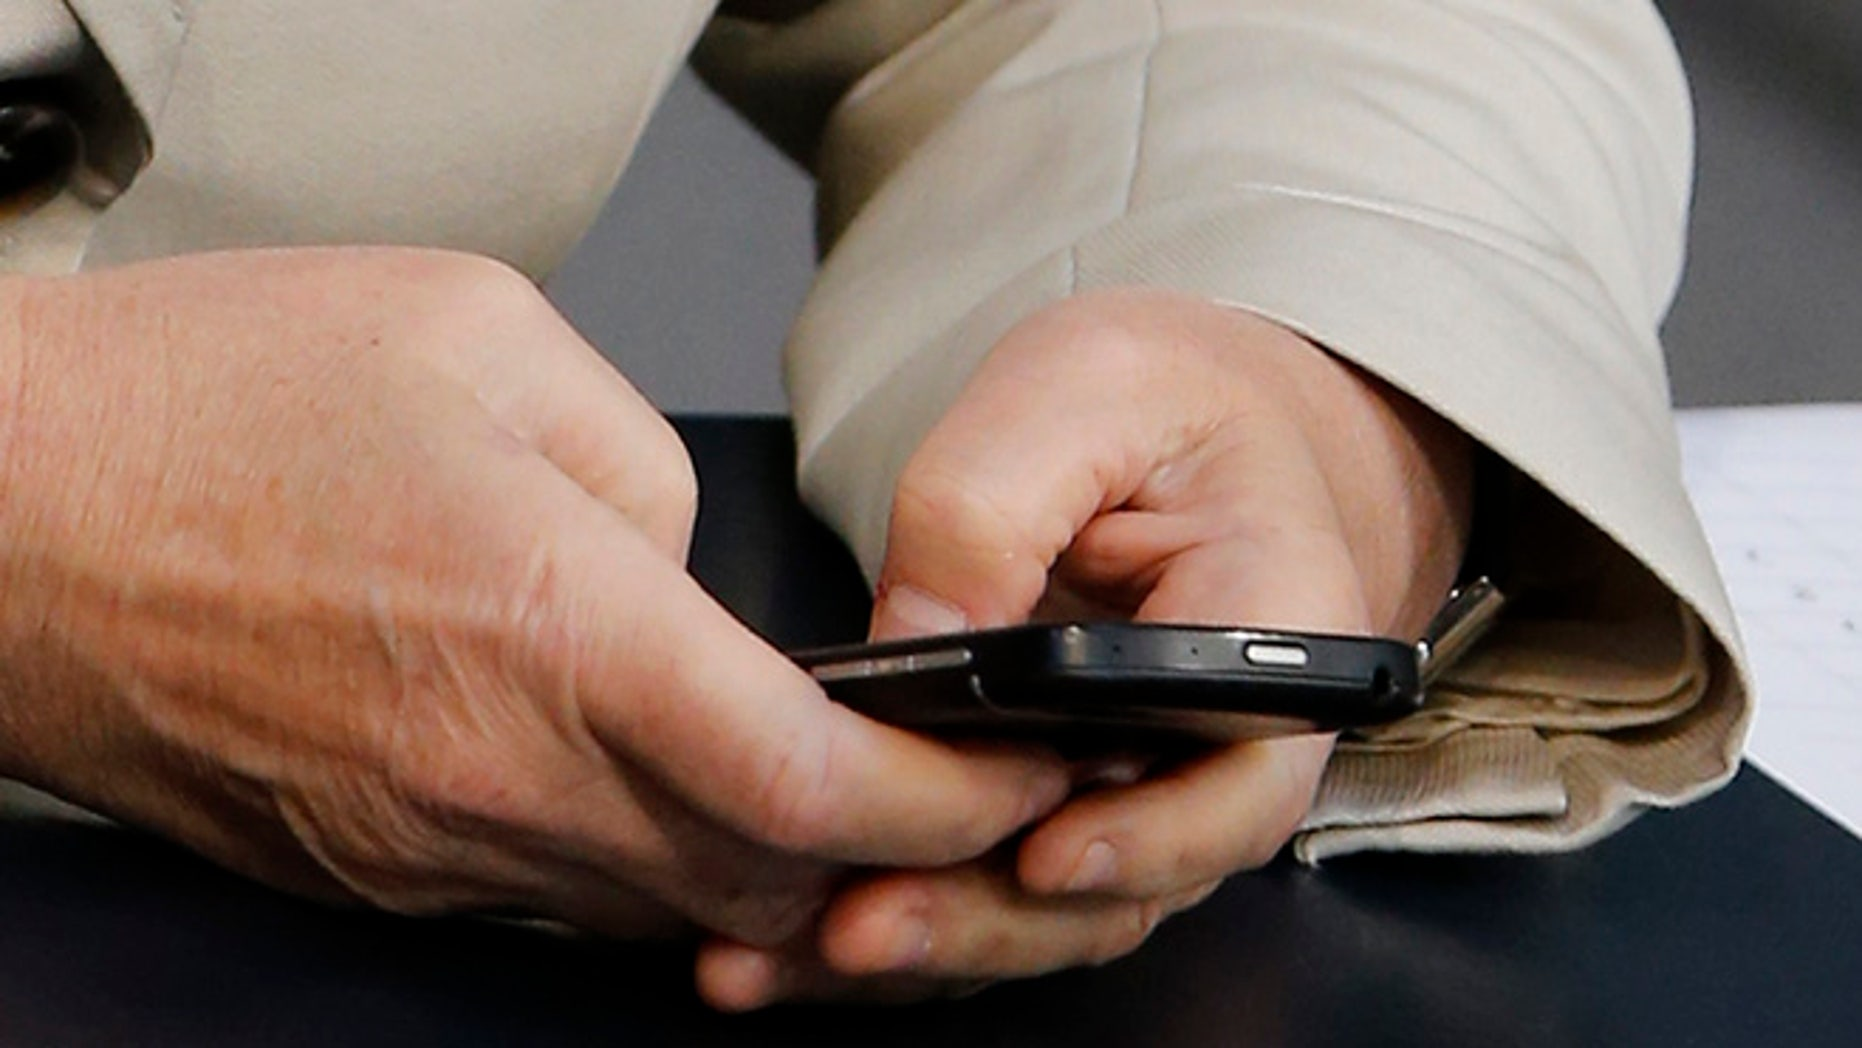 FILE: UNDATED: A person sends an email on a smartphone.